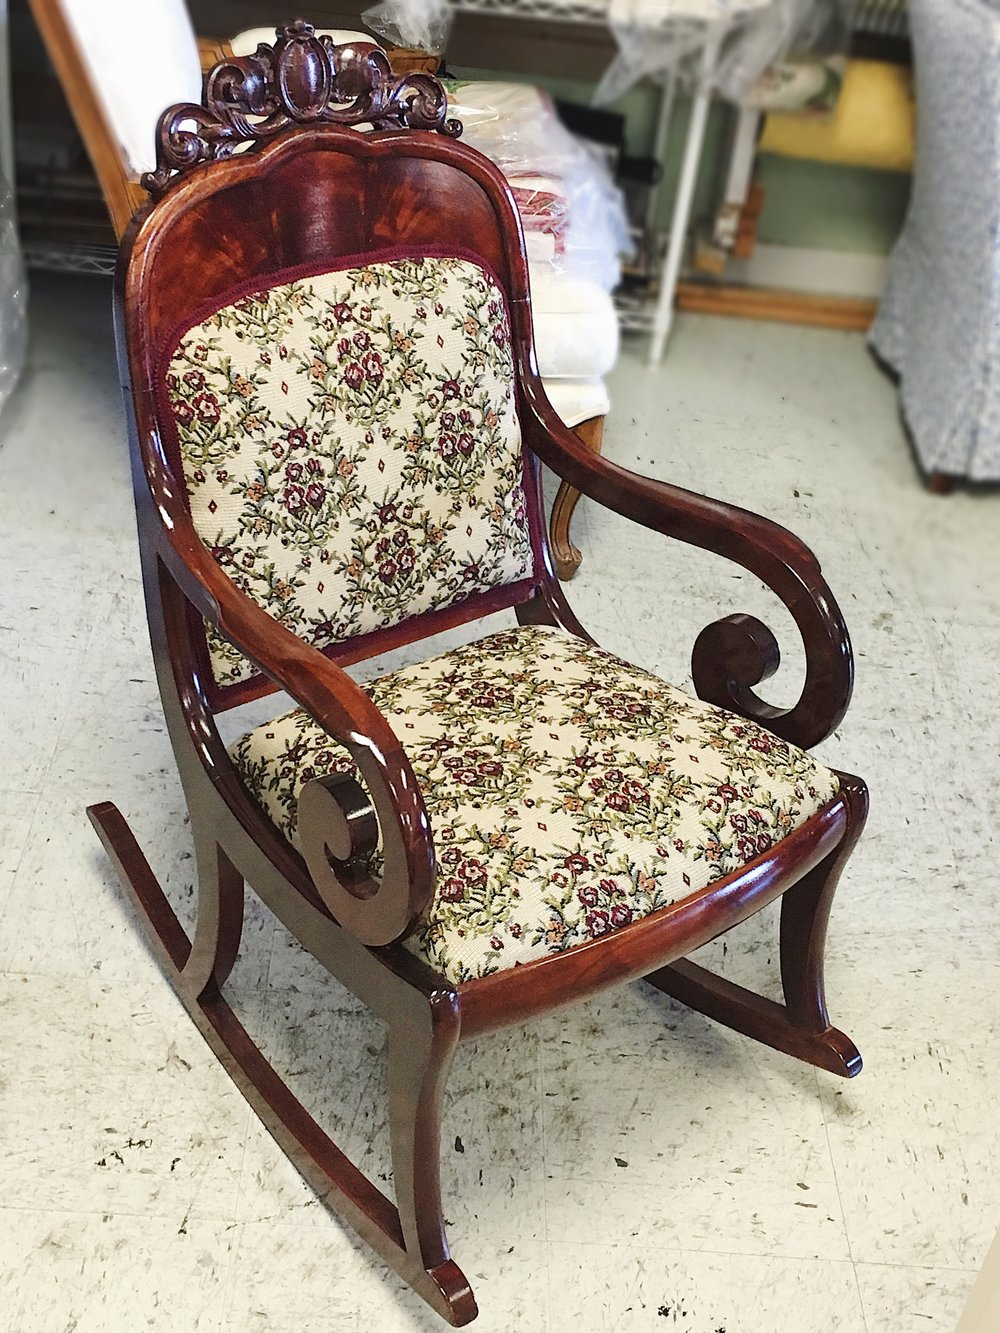 re-upholstered rocking chair